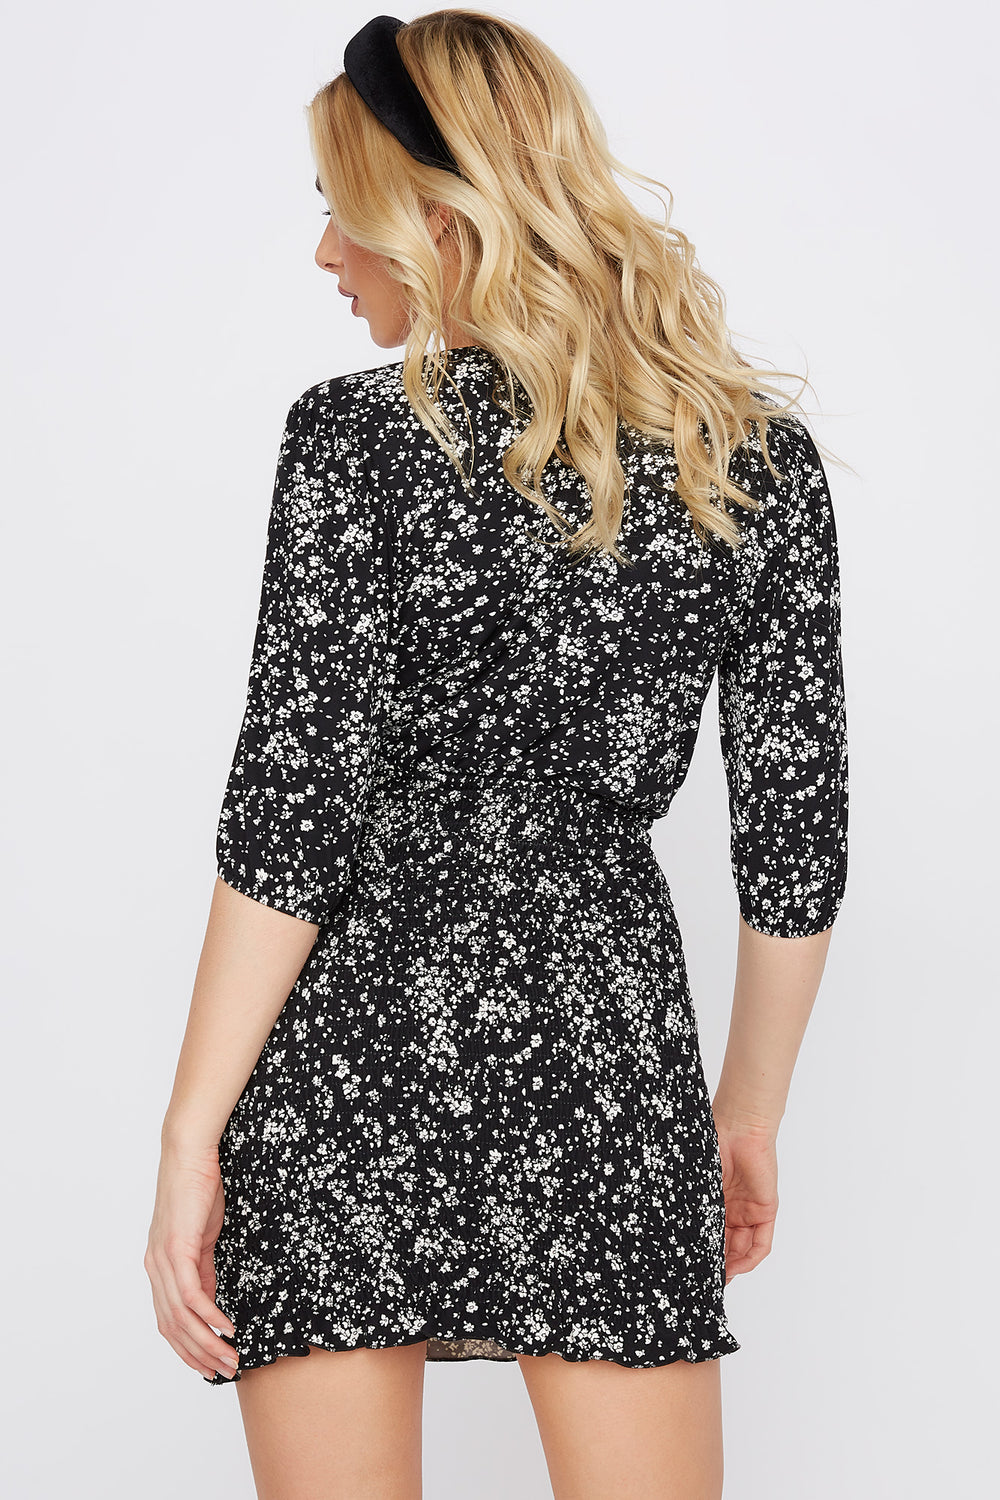 Soft Floral Smocked Lettuce Hem Mini Dress Black